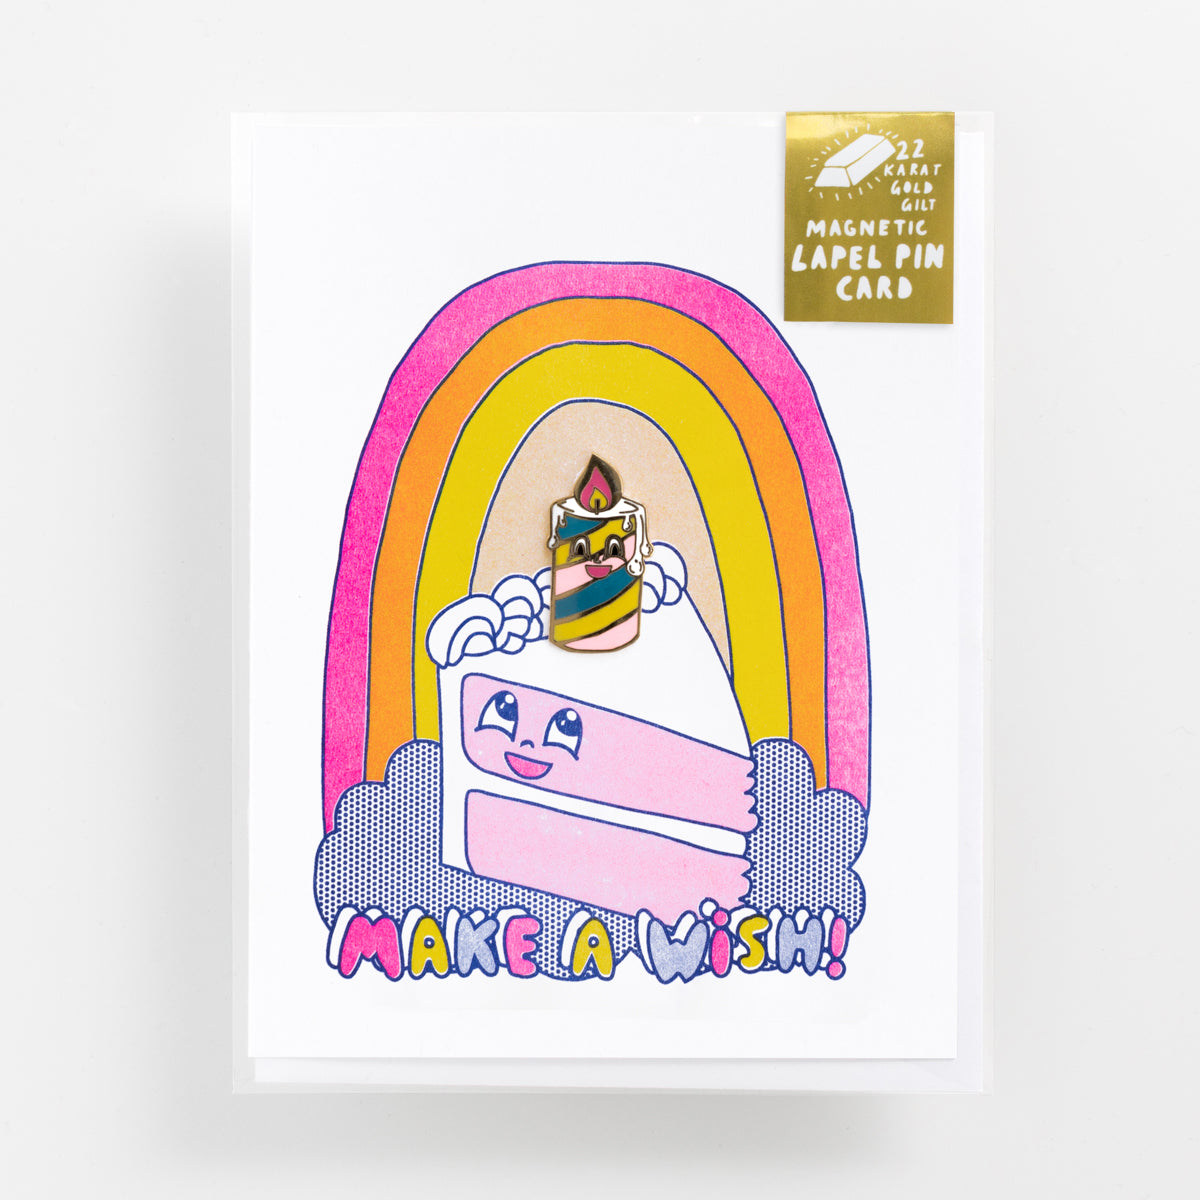 Make A Wish risograph birthday greeting card with 22k gold gilt magnetic birthday candle enamel lapel pin